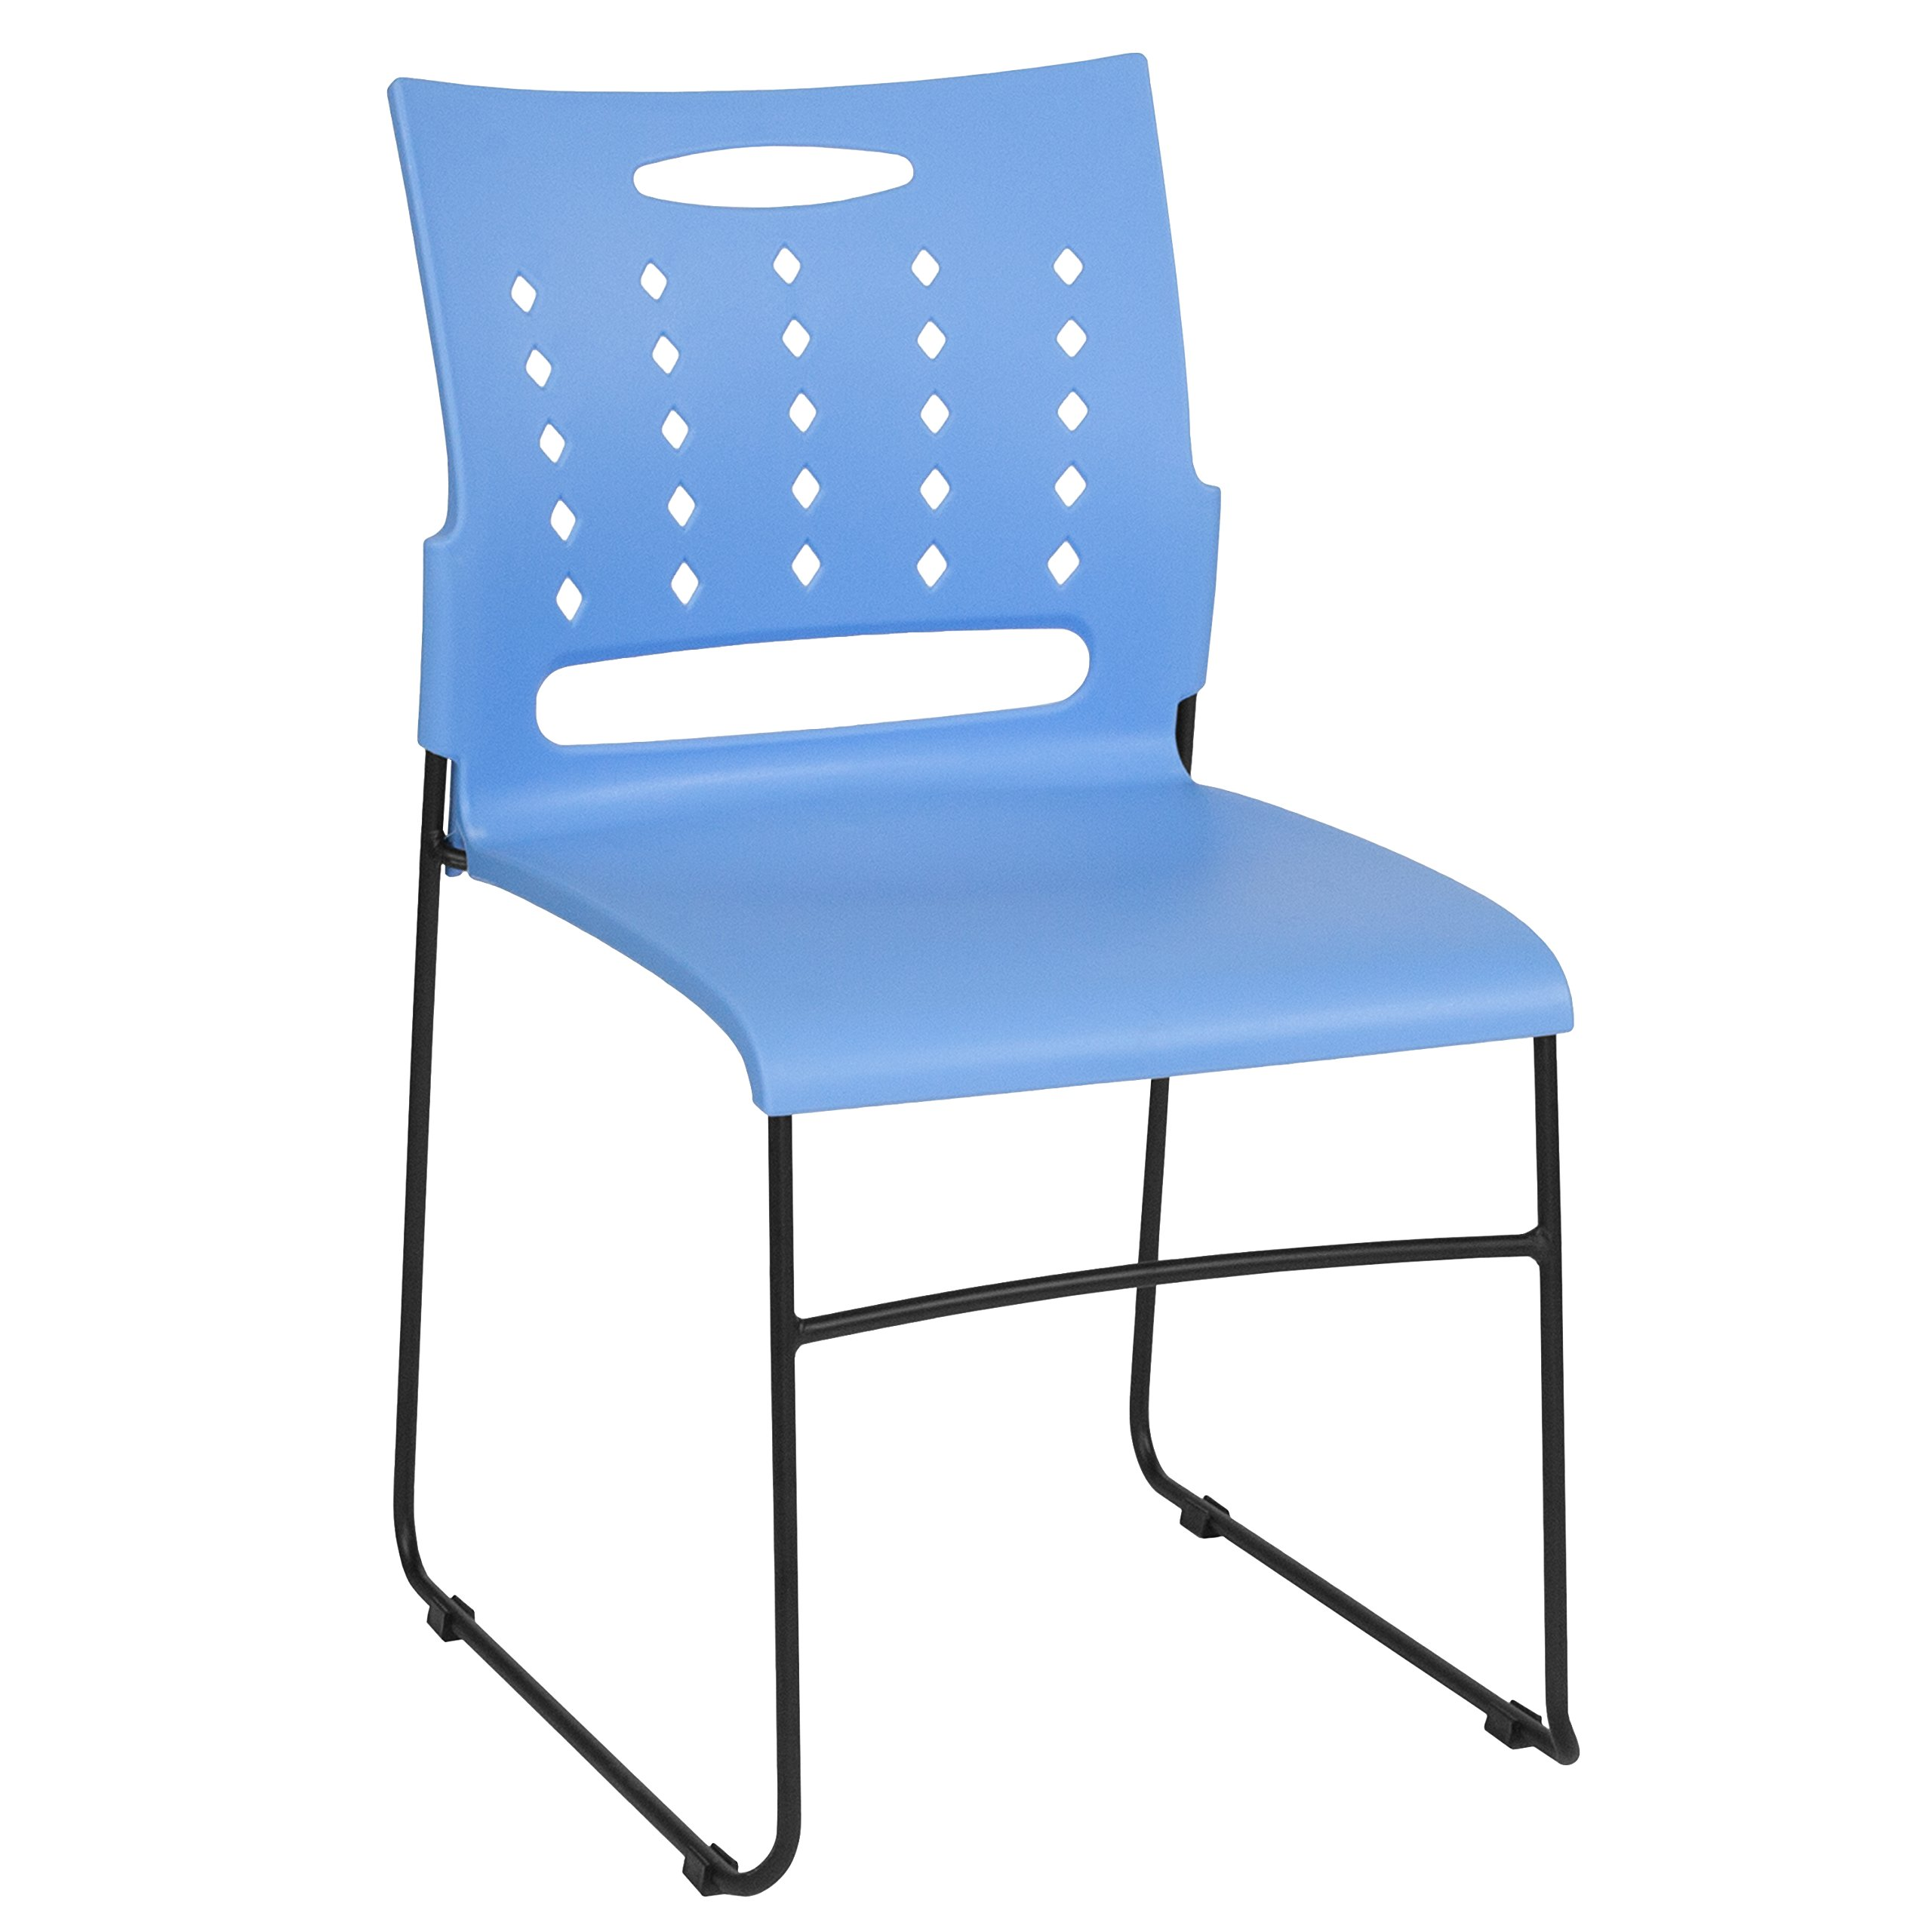 Flash Furniture RUT-2-BL-GG Blue Plastic Stack Chairs, 1 Pack,